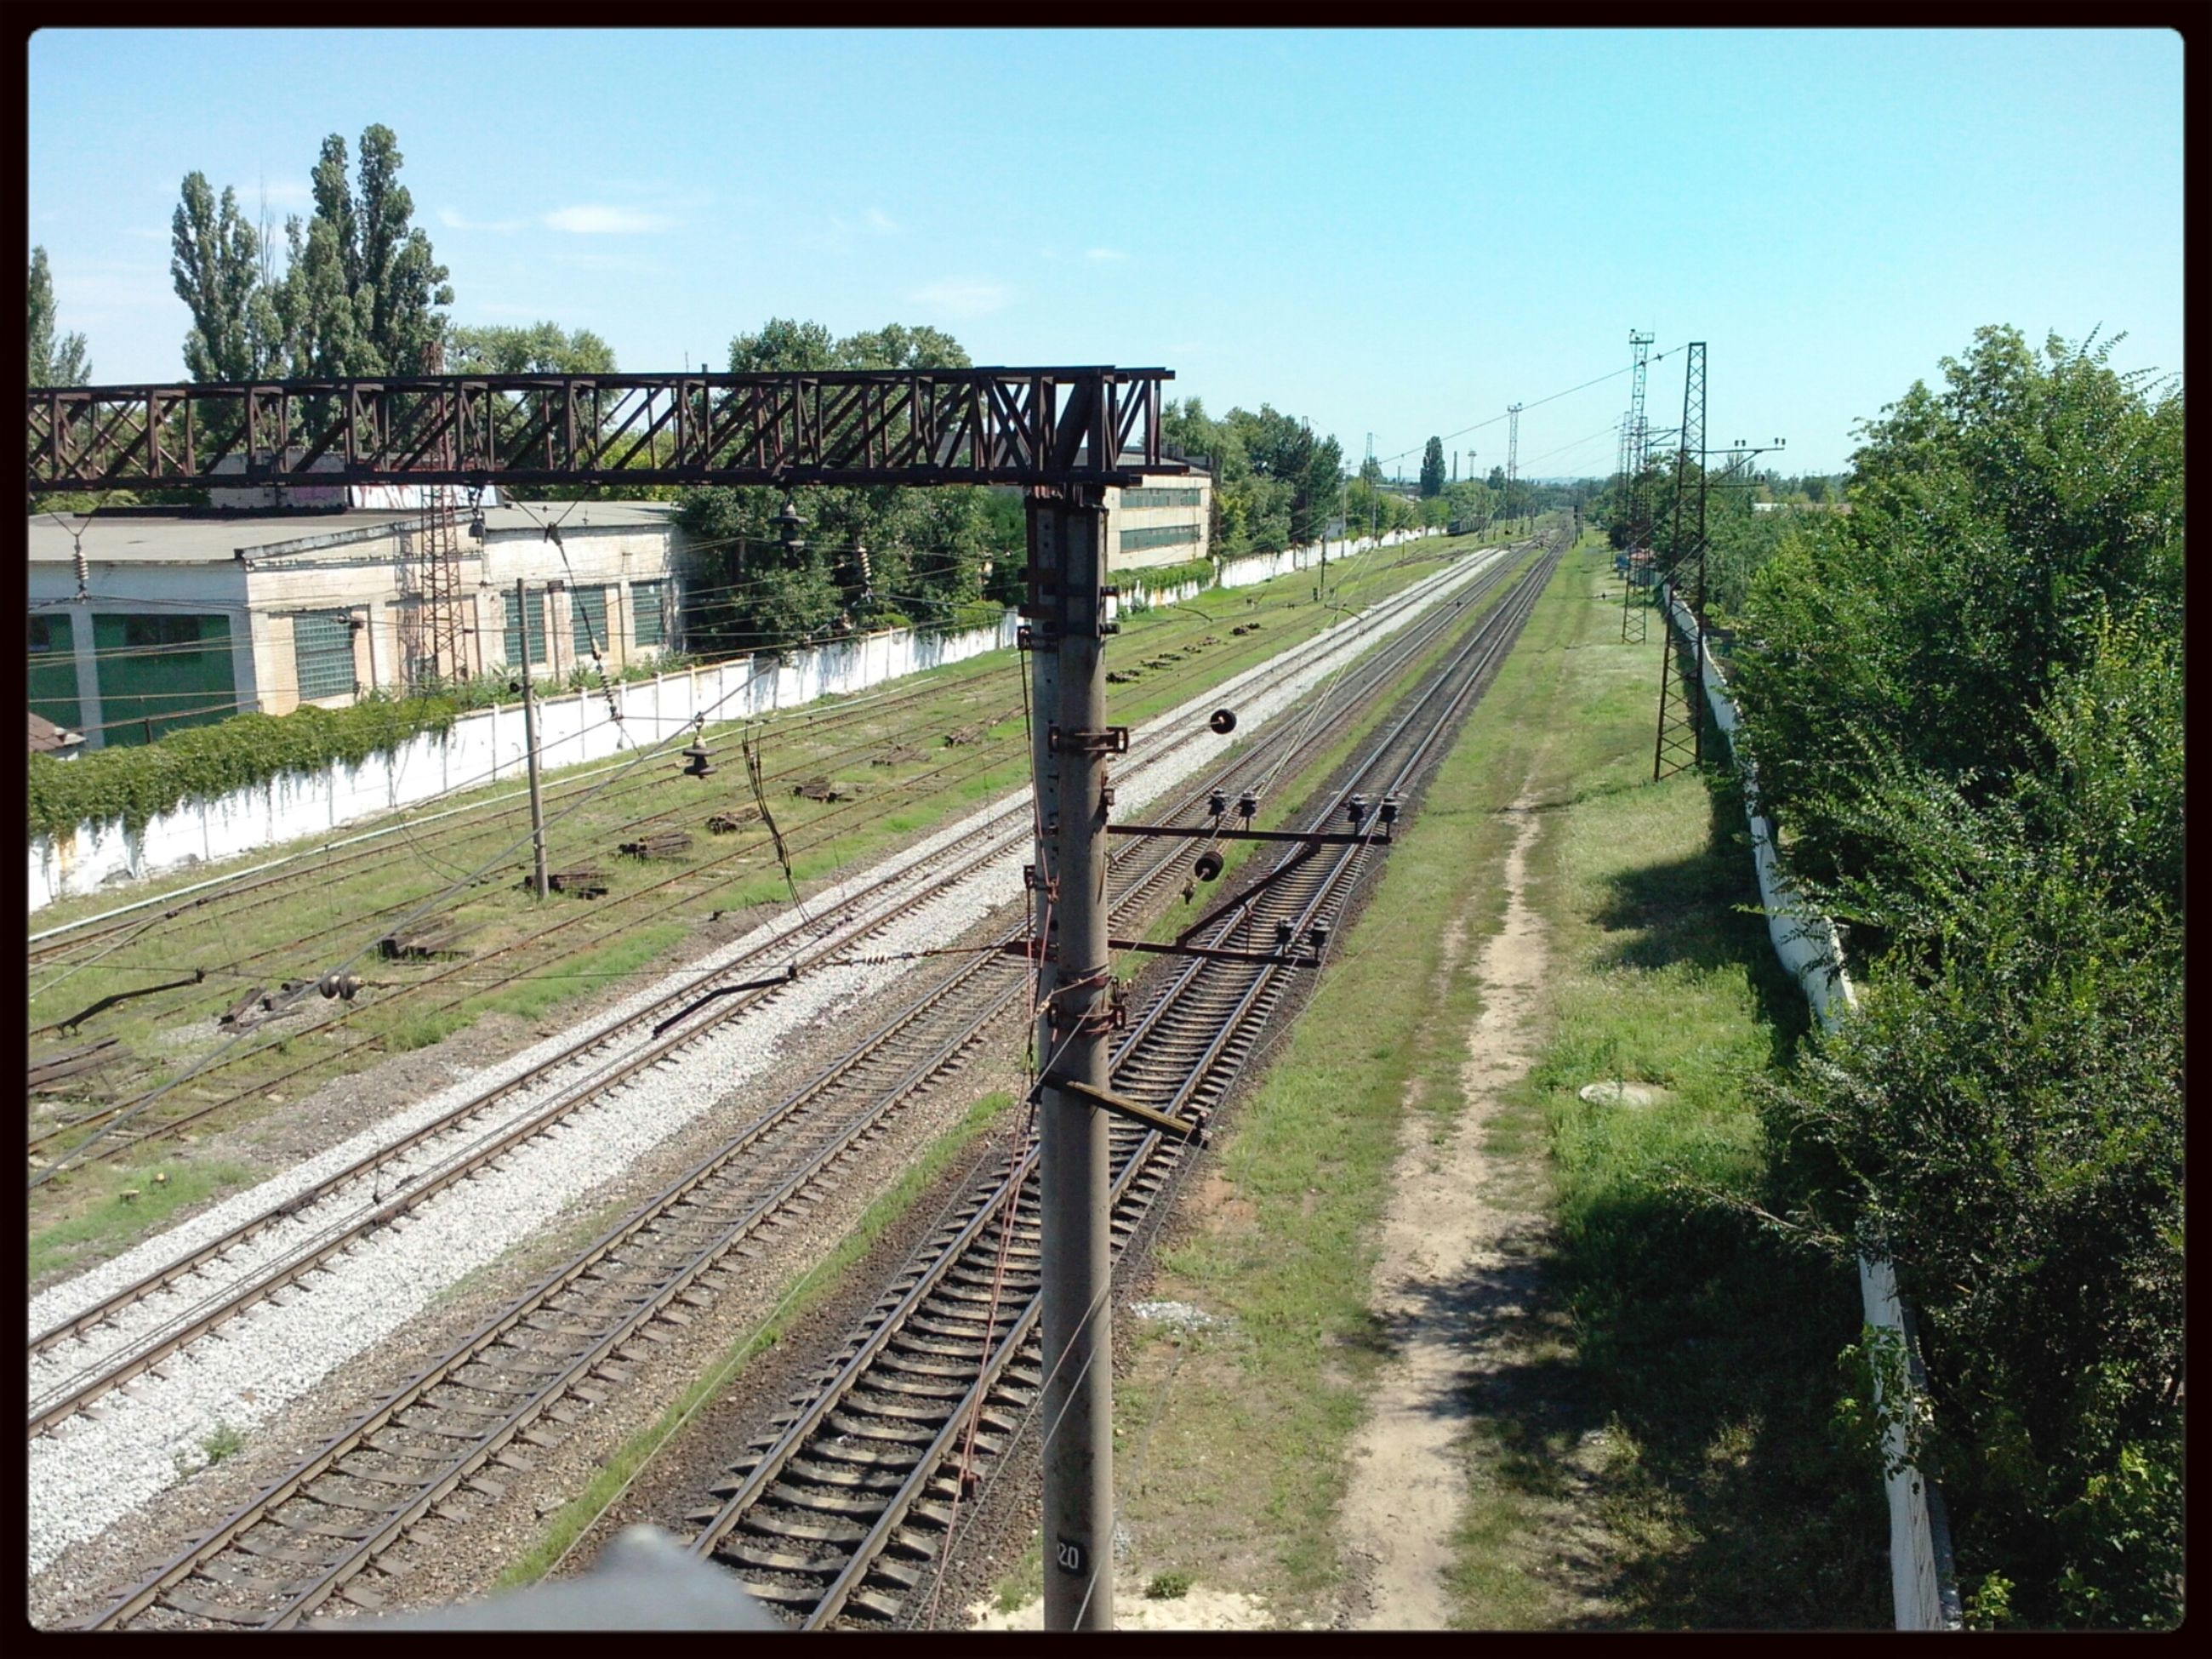 railroad track, transfer print, rail transportation, transportation, tree, built structure, auto post production filter, architecture, the way forward, public transportation, clear sky, sky, diminishing perspective, building exterior, railway track, vanishing point, day, railroad station platform, high angle view, railroad station